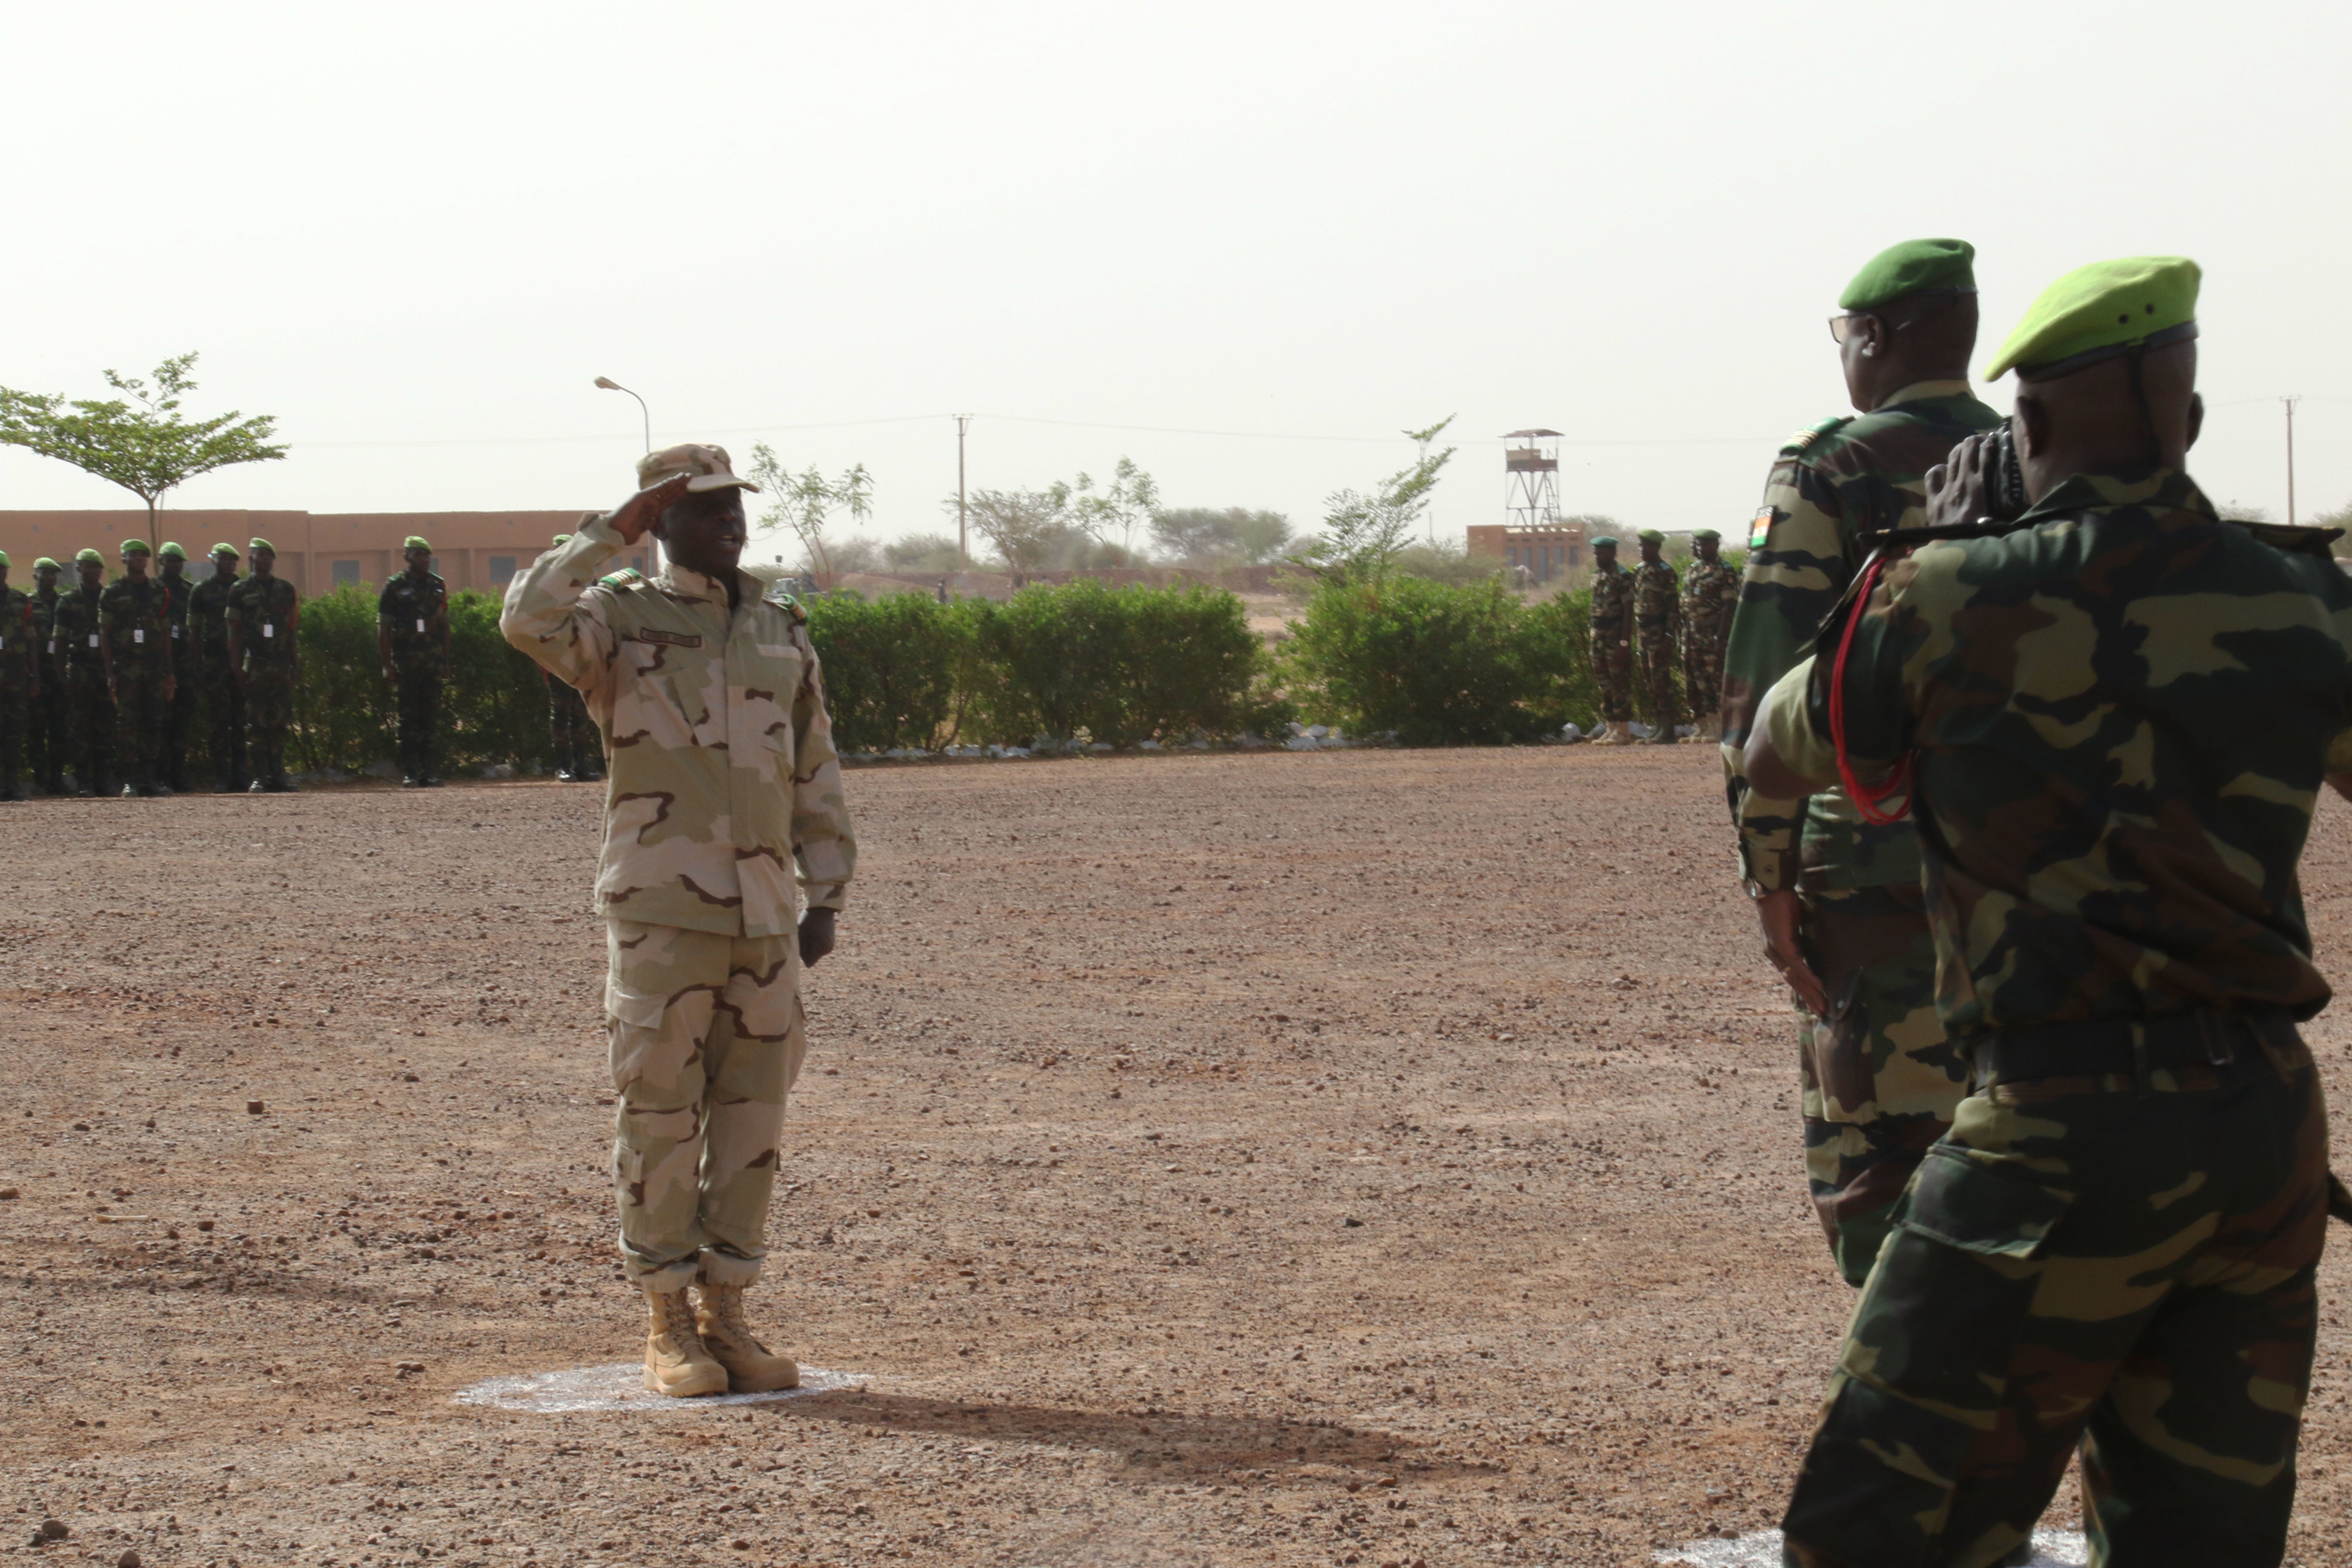 TAHOUA, Niger - Col. Mohamed Toumba, Zone 4 Commander, Forces Armees Nigeriennes, or FAN, inspects international service members participating in Flintlock 2018 in Tahoua, Niger, April 11, 2018. Flintlock 2018, hosted by Niger, with key outstations at Burkina Faso and Senegal, is designed to strengthen the ability of key partner nations in the region to counter violent extremist organizations, protect their borders, and provide security for their people. (U.S. Army photo by Staff Sgt. Kulani Lakanaria/RELEASED)